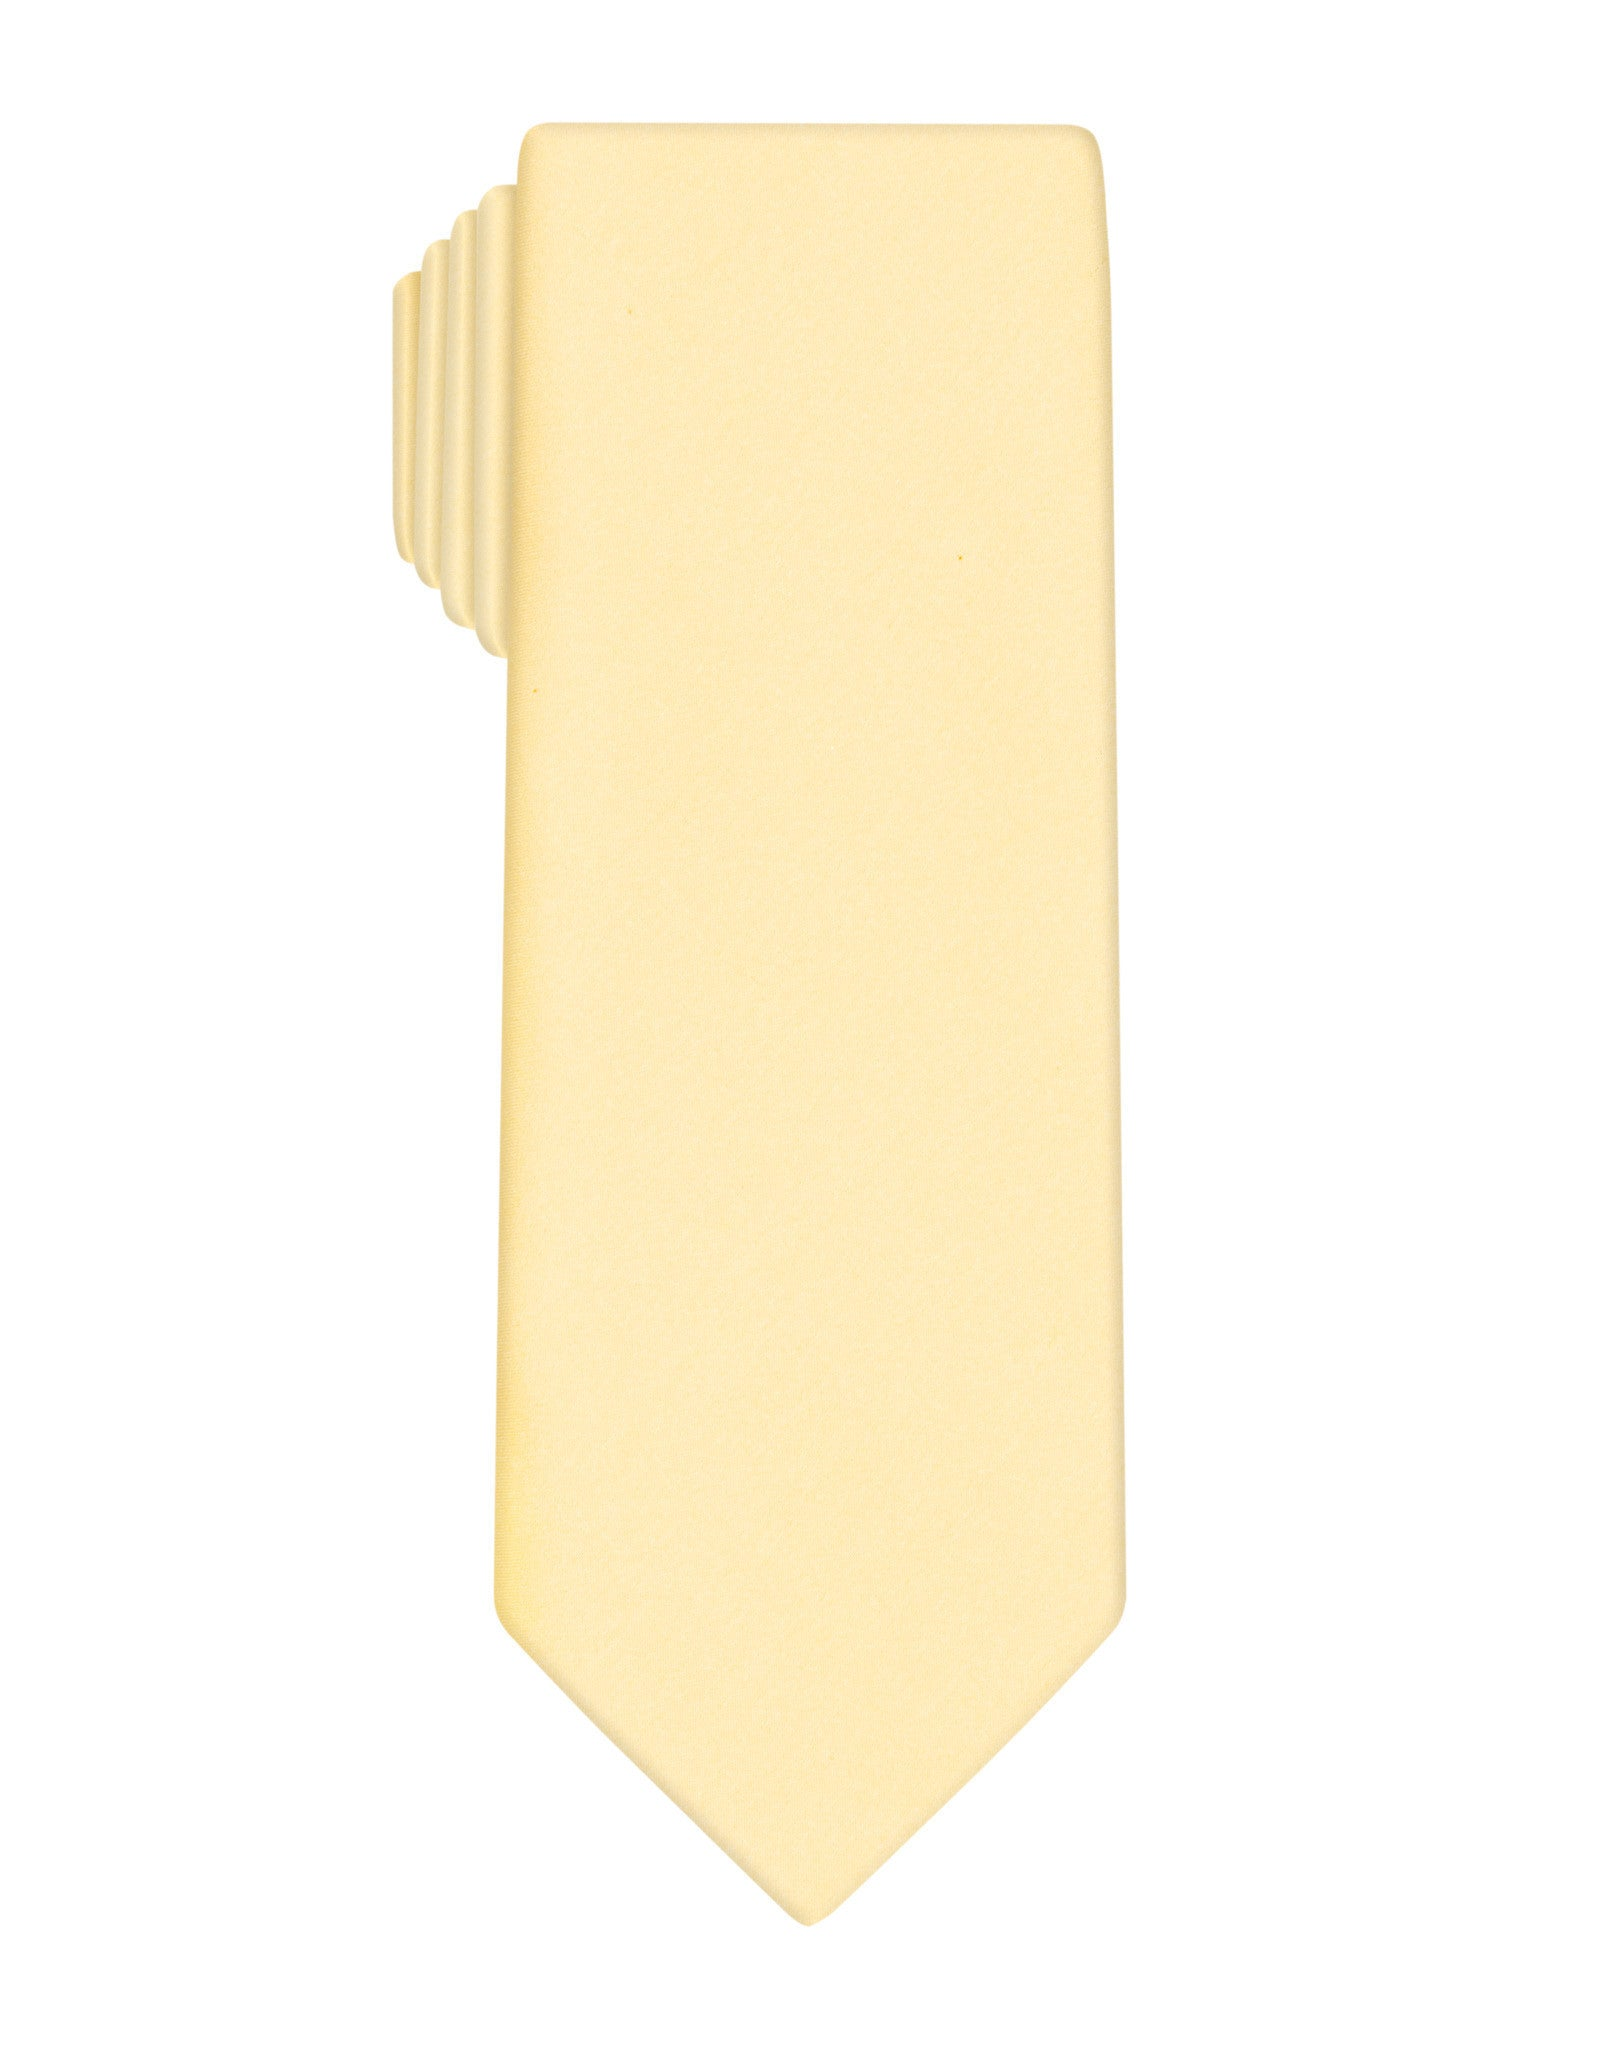 Yellow Handprinted Satin Tie